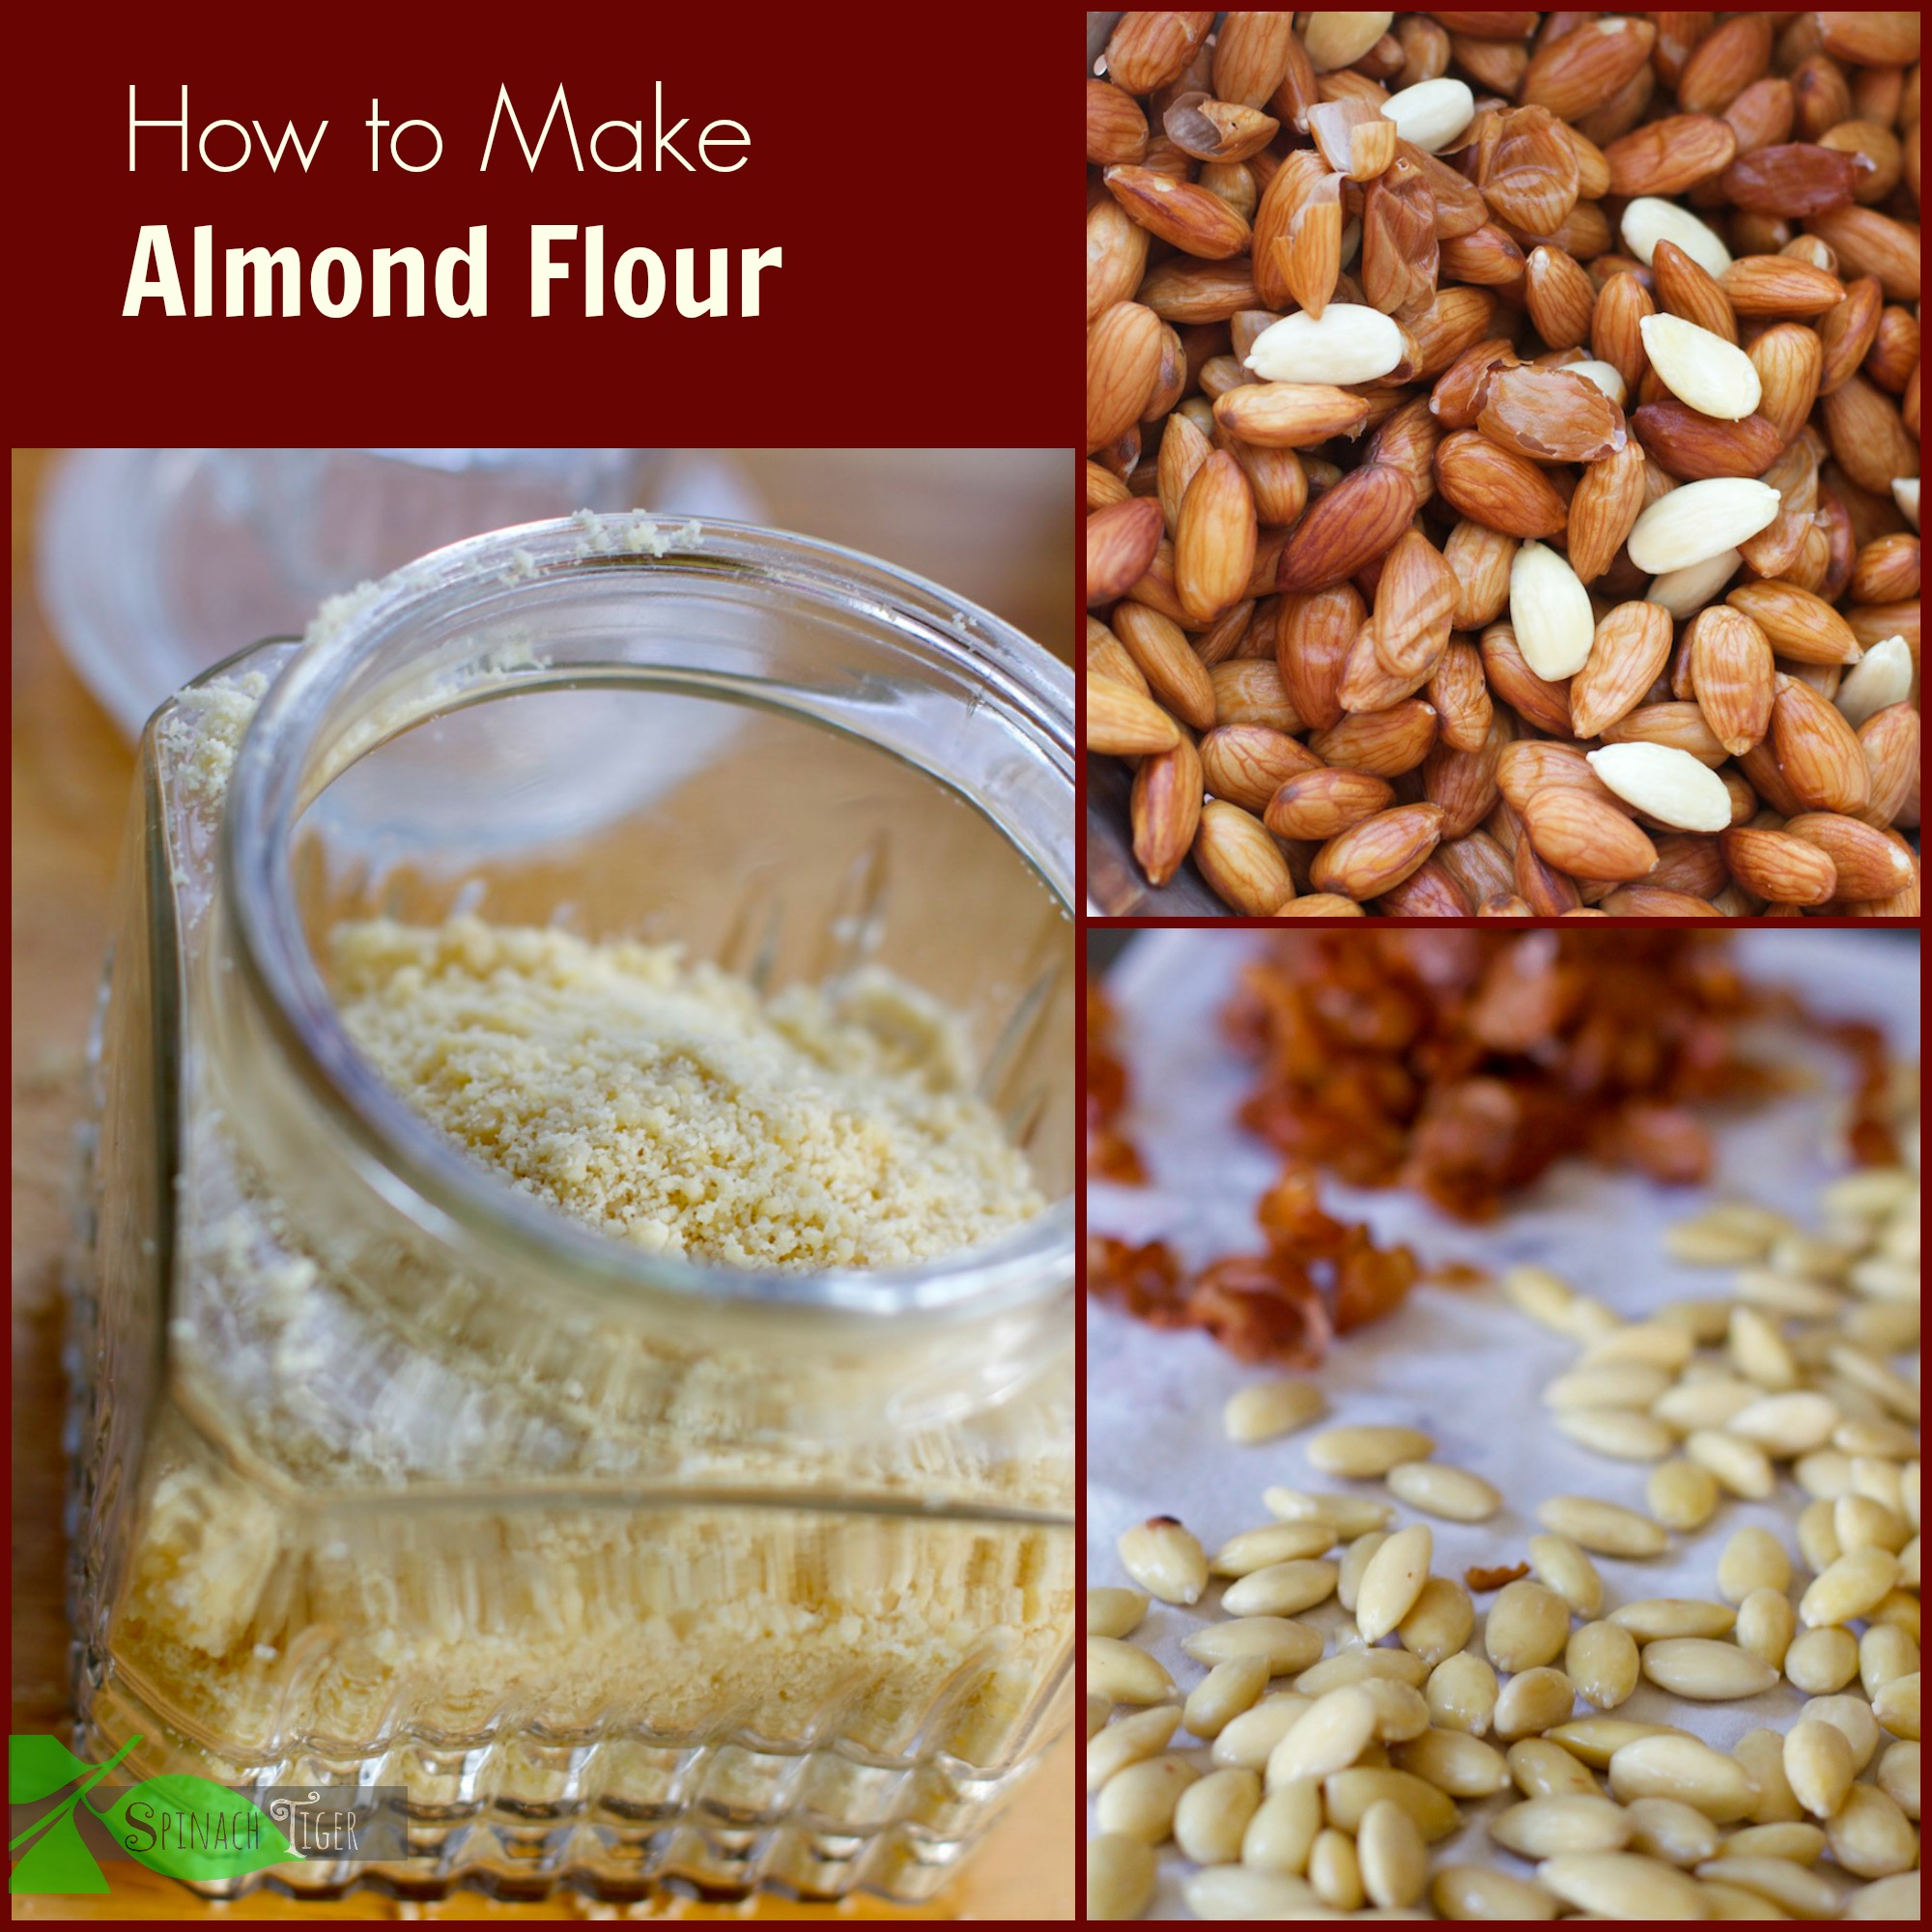 How to Make Blanched Almond Flour by Angela Roberts